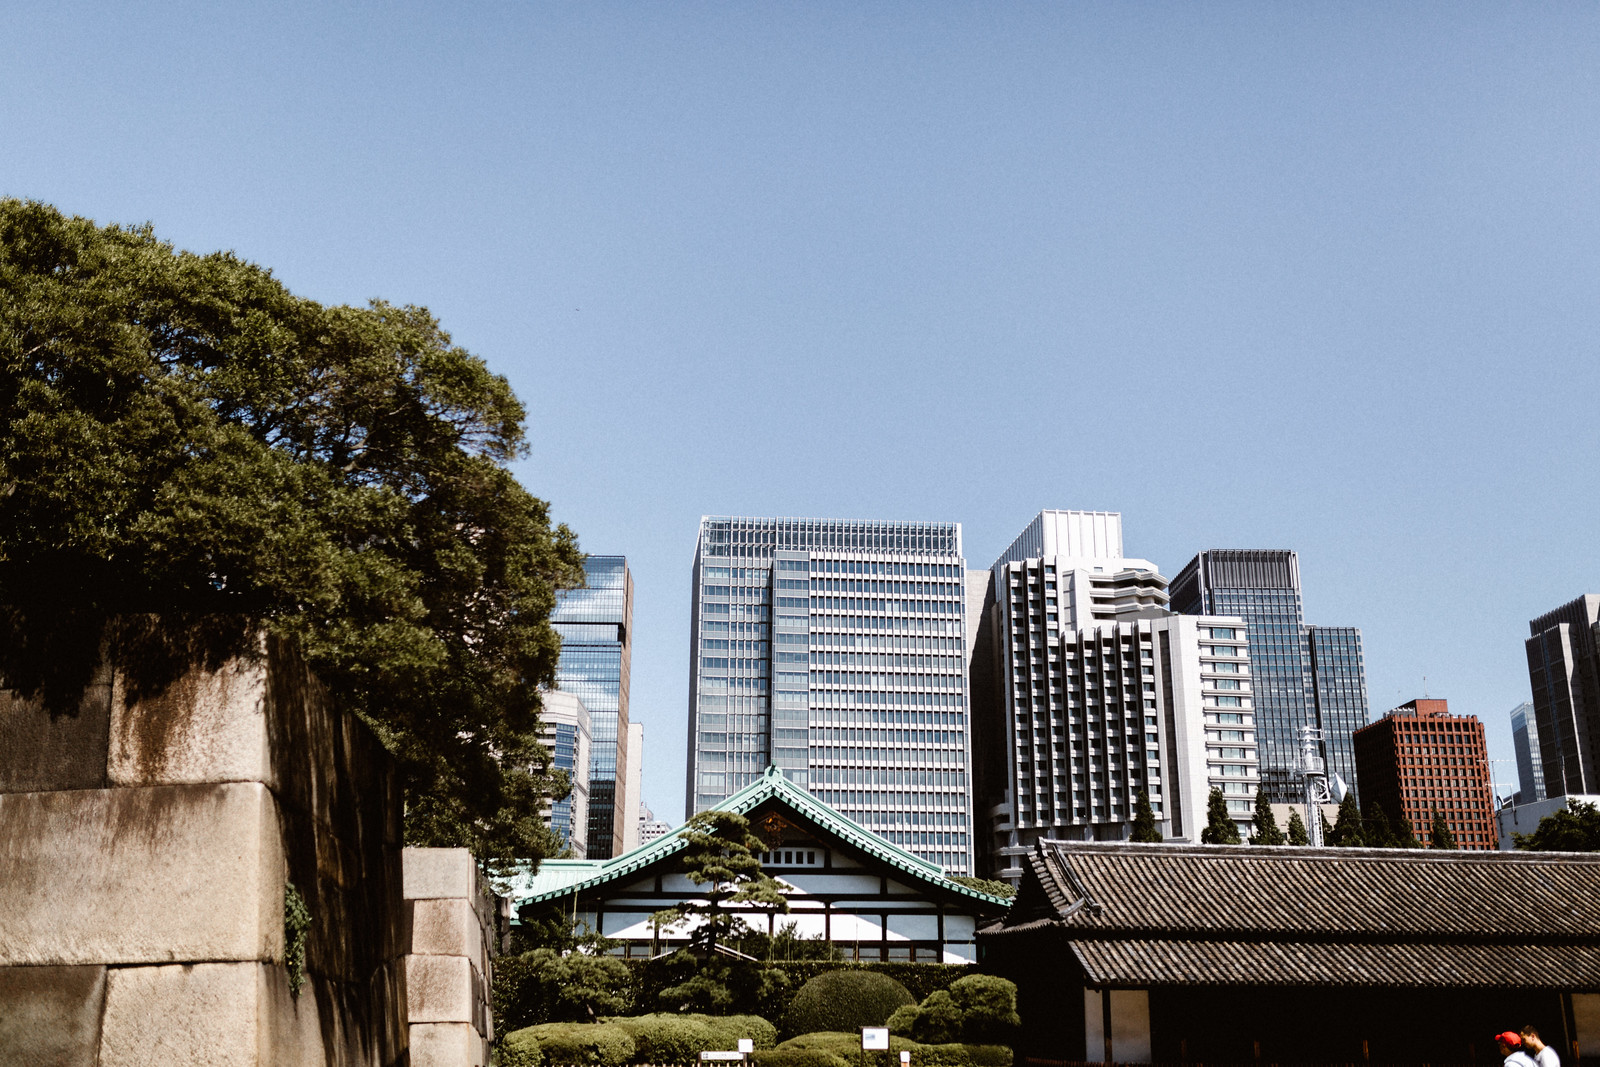 The beautiful architecture of the imperial palace juxtaposed to the high rises of central Ginza. The action of Tsukiji market is just a short walk away from this monumental and historic yet peaceful landmark.